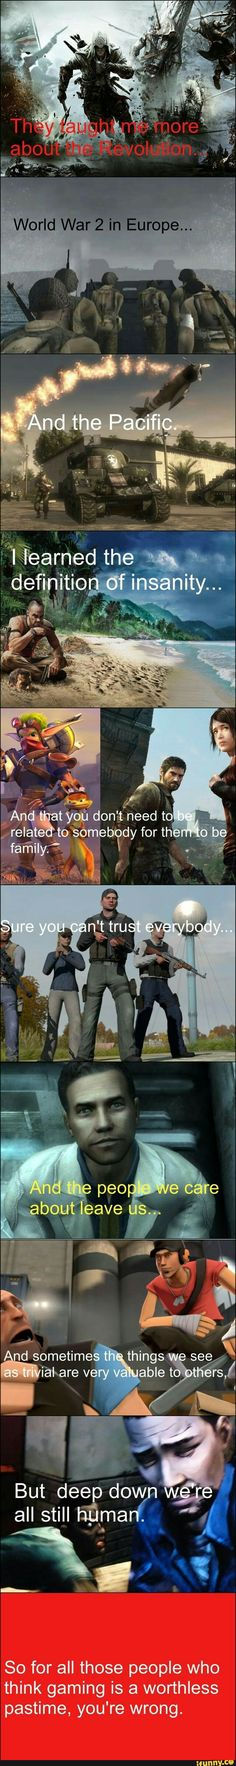 Keep on keeping on, gamers Video Game Quotes, Video Game Logic, Video Games Funny, Video Game Art, Funny Games, Video Games Xbox, Geek Culture, I Am Game, Gaming Memes